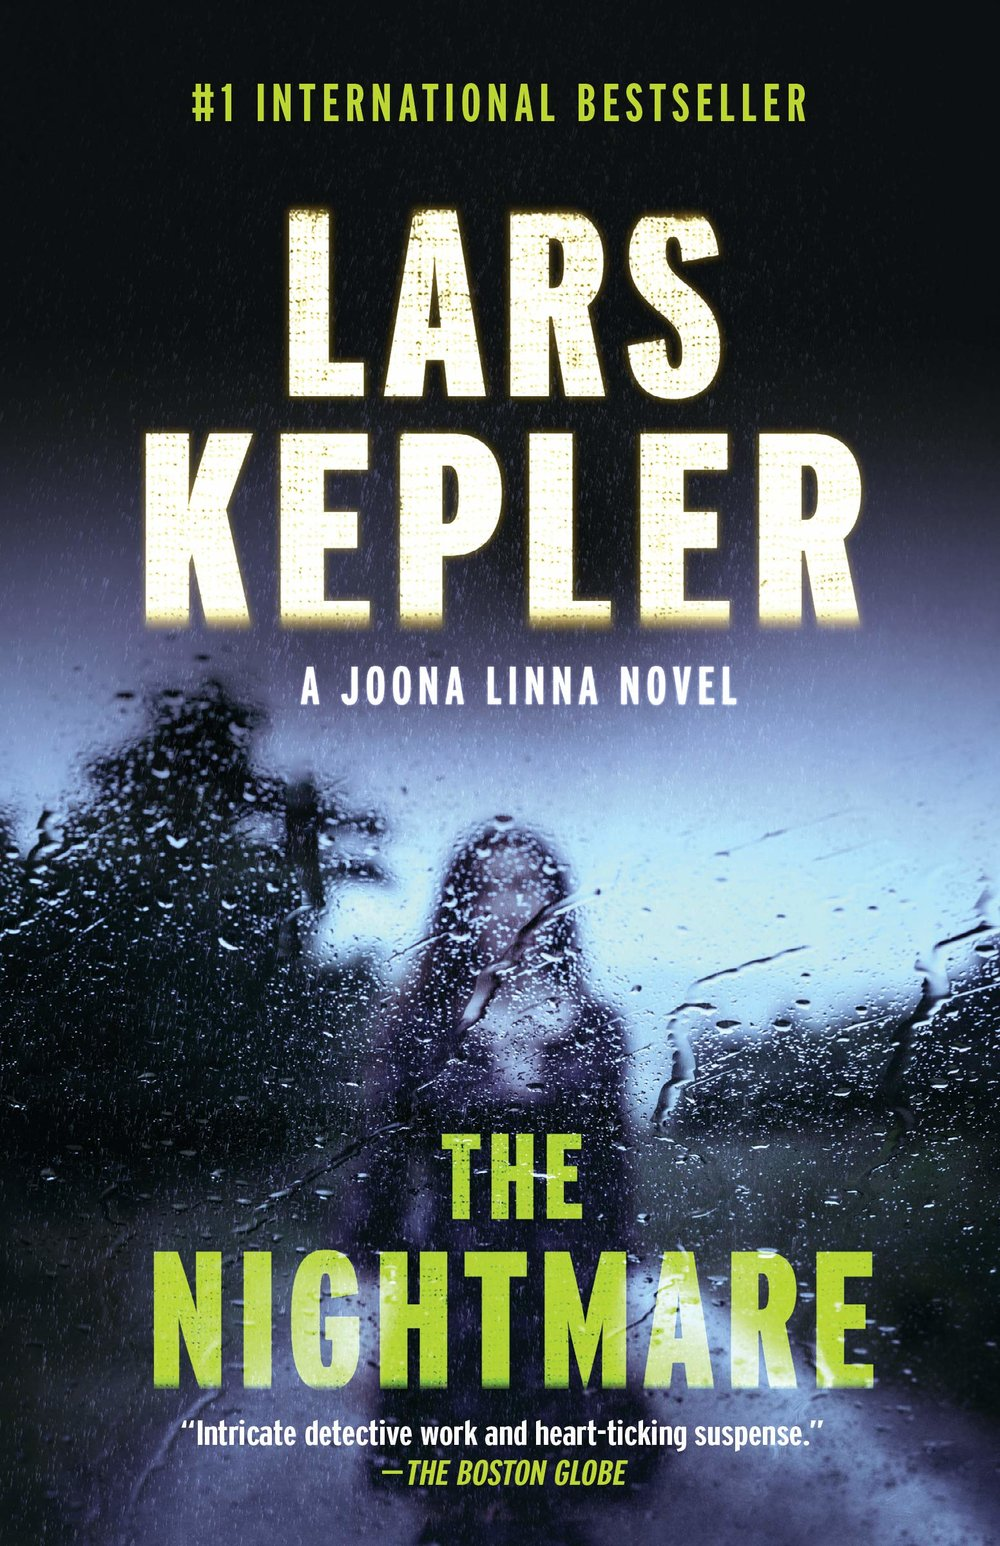 The Nightmare by Lars Kelper